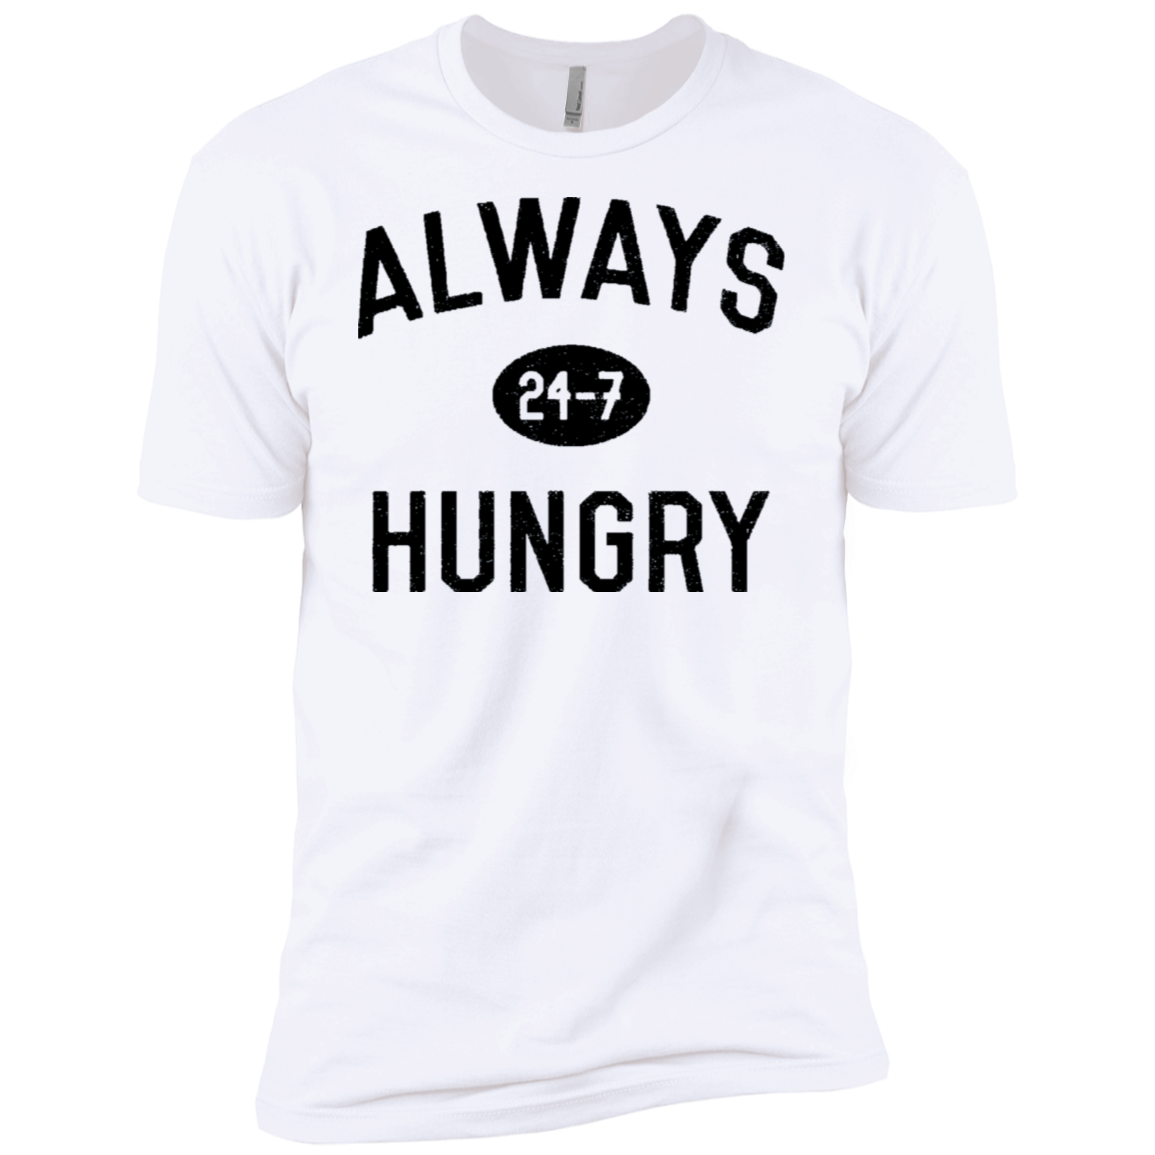 Hungry 247 Men's Classic Tee - Trendy Tees